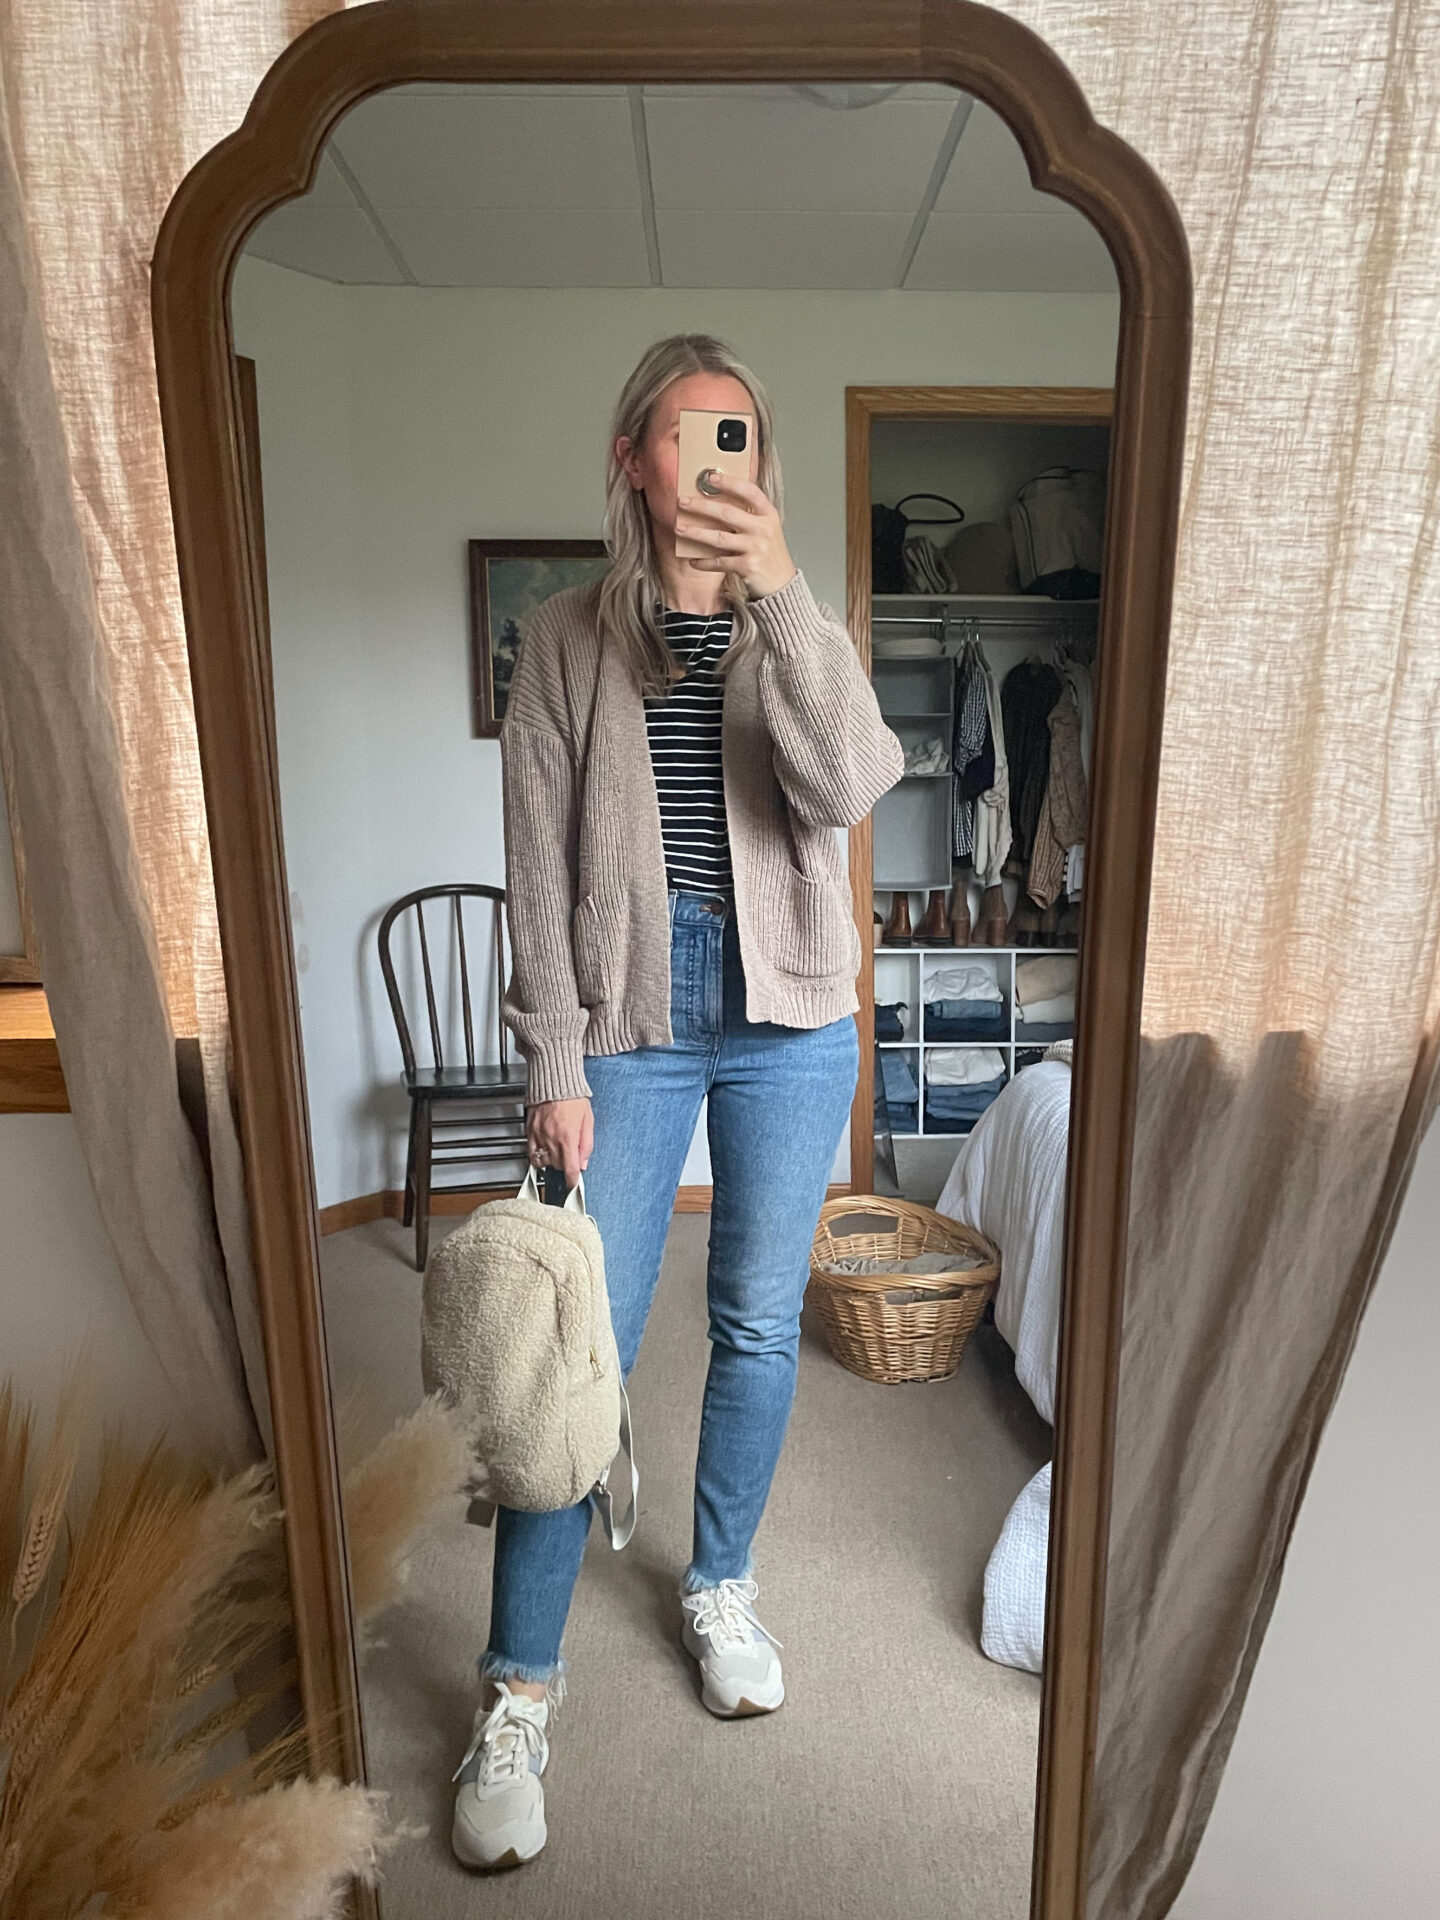 Karin Emily wears a sustainably made cardigan, striped tee, perfect vintage jeans from madewell, new balance sneakers, and a sherpa bag